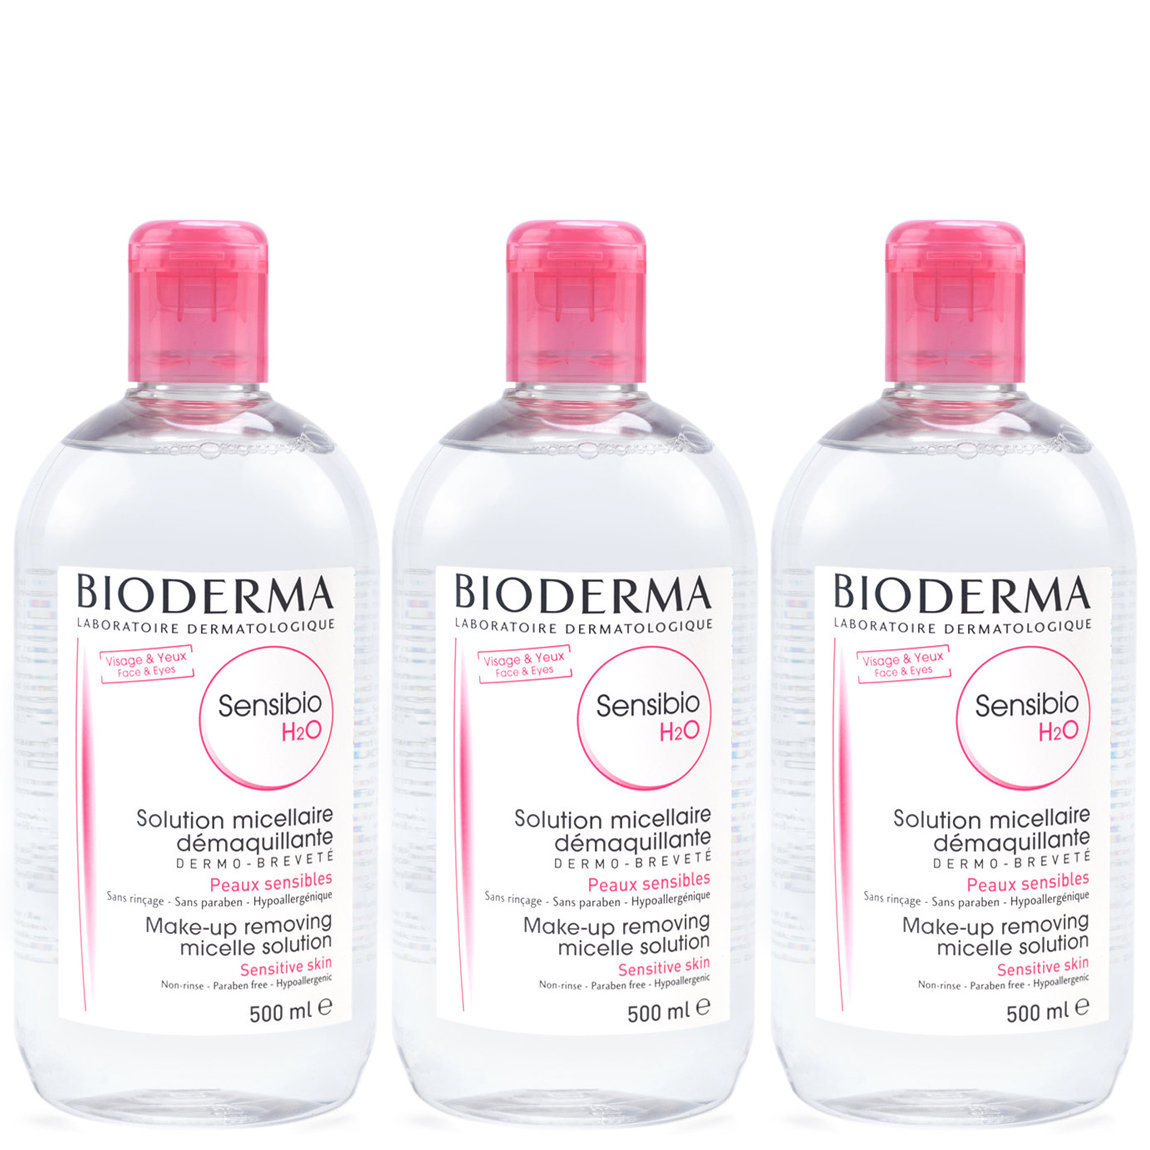 Bioderma Sensibio H2O 500 ml Trio product smear.